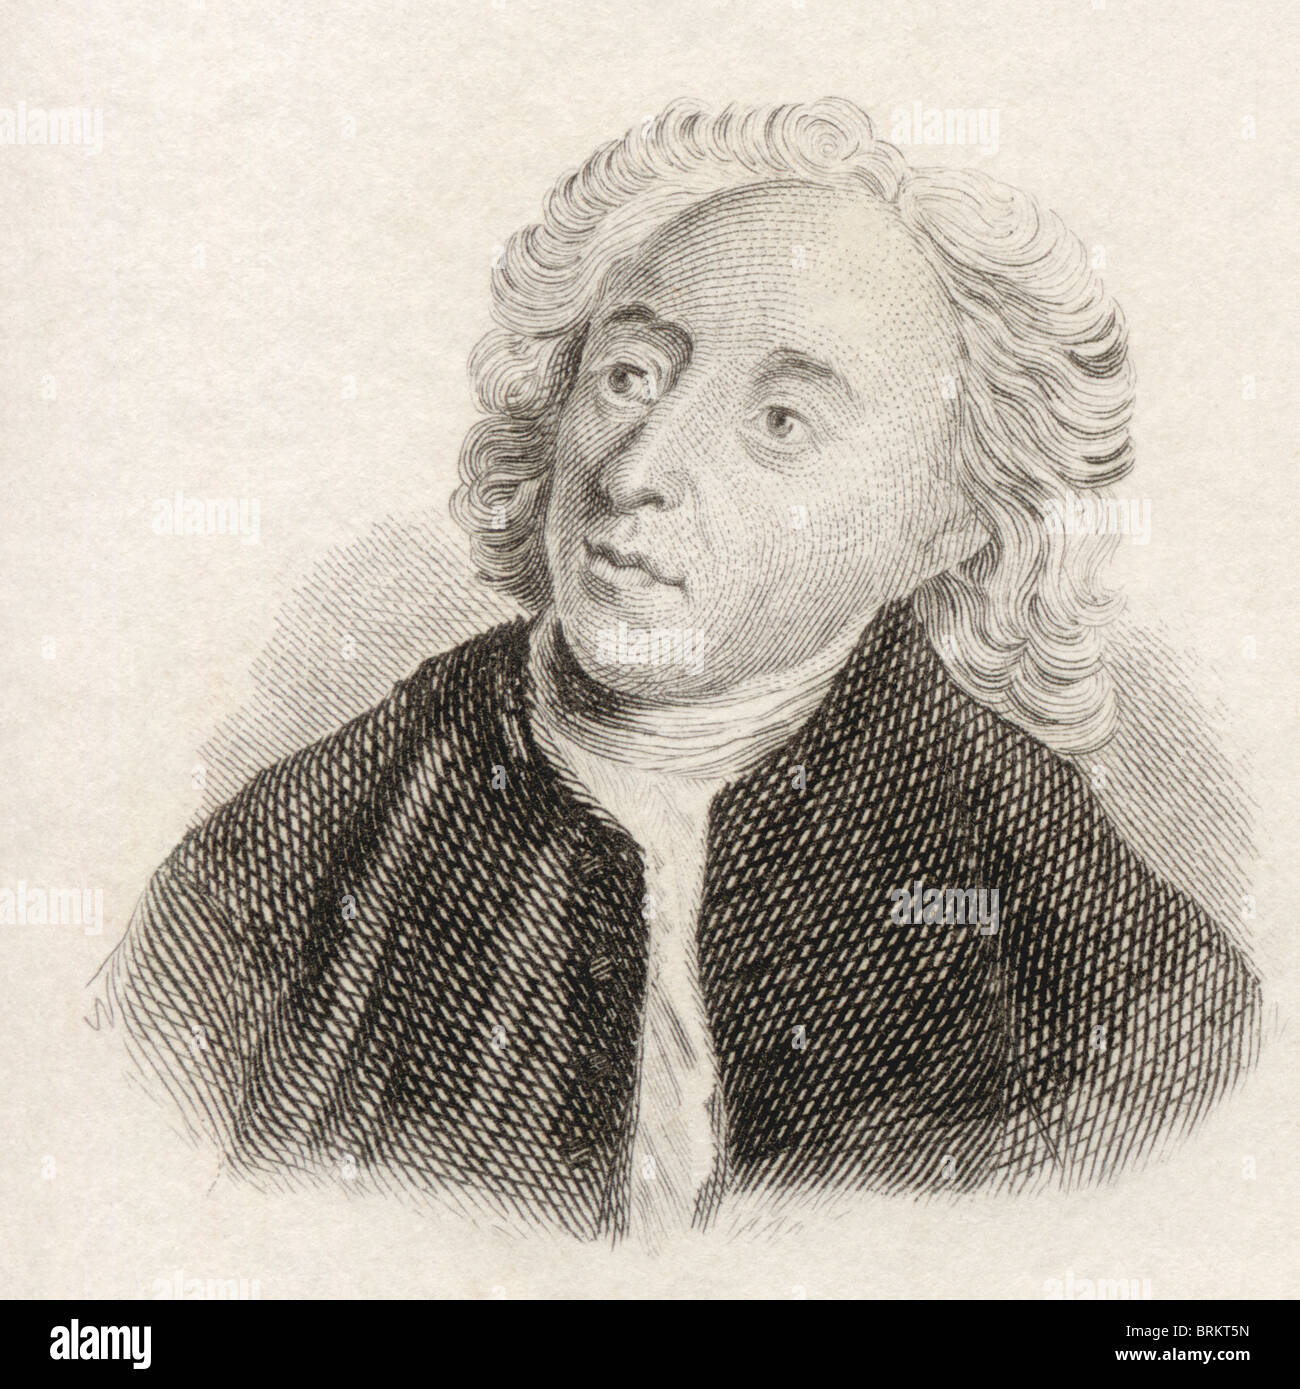 Alexander Pope, 1688 à 1744. Poète satirique anglais. Photo Stock